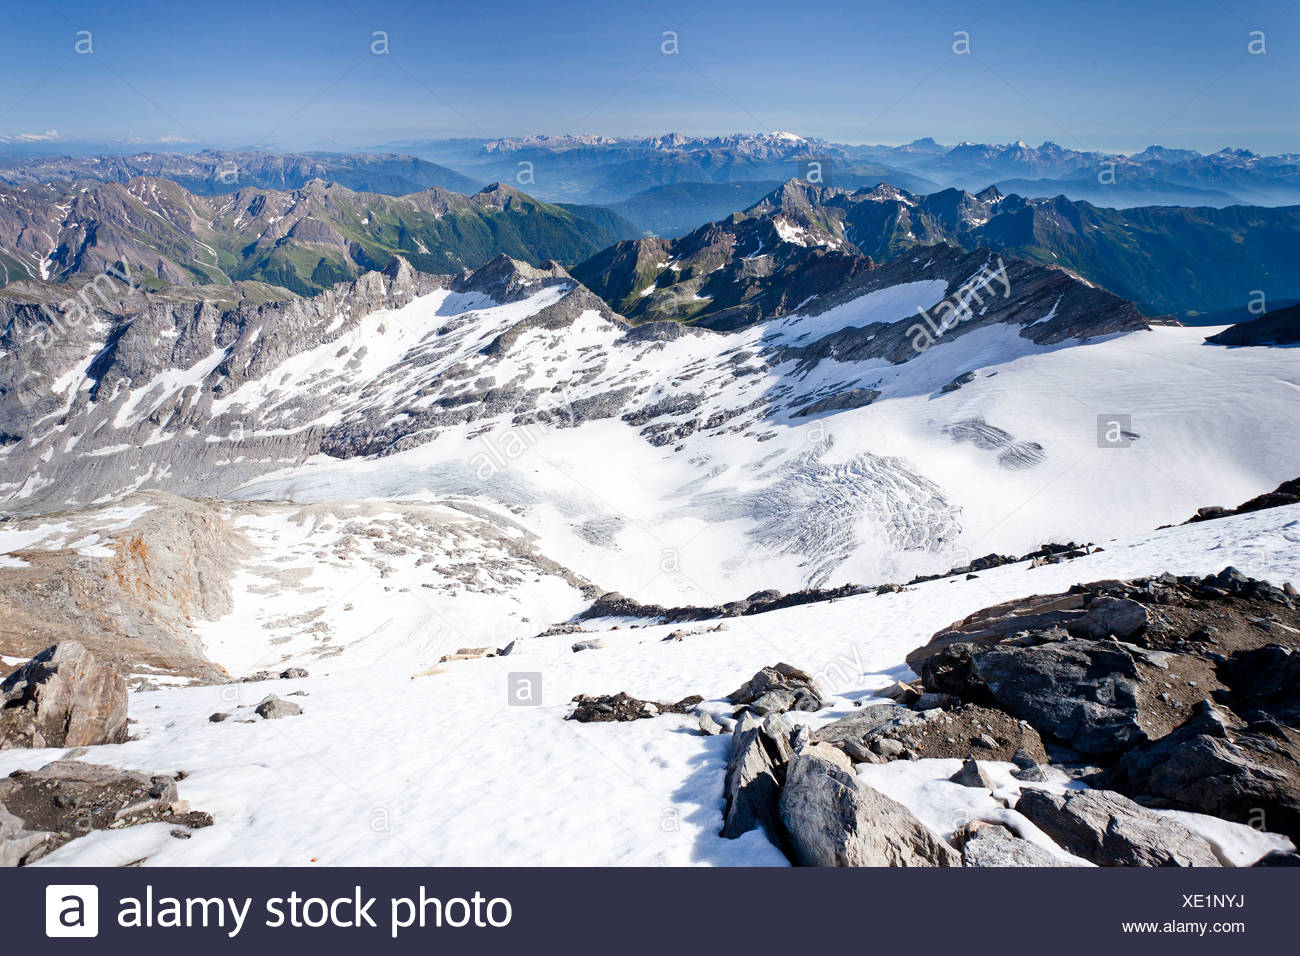 View from Hochfeiler Mountain, Pfitschertal, looking over Pfitschertal Valley, Valle Isarco and Wipptal and the Dolomites Stock Photo